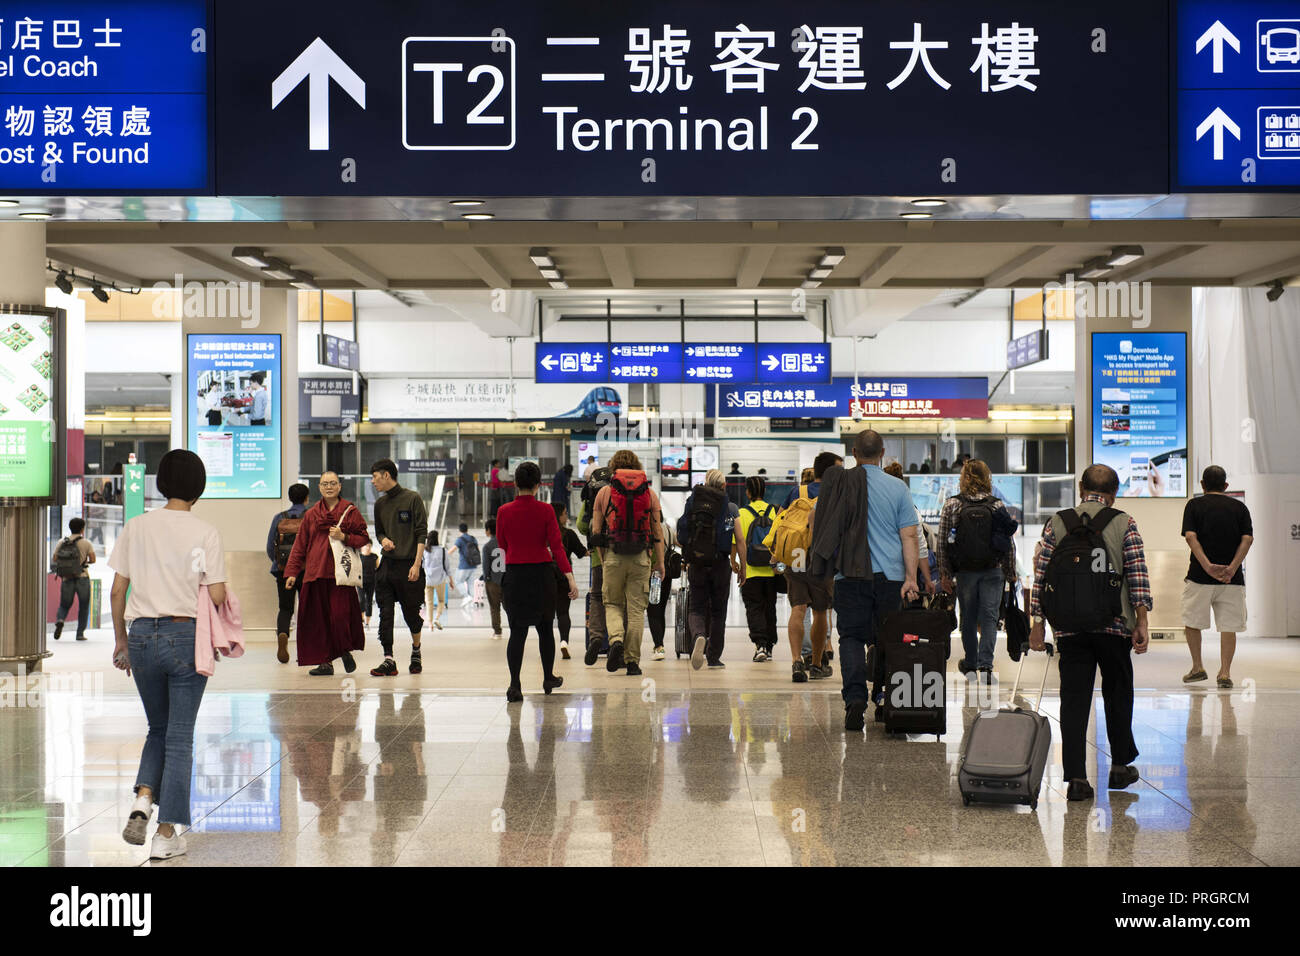 Chek Lap Kok island, Hong Kong. 28th Sep, 2018. Passengers are seen walking through Hong Kong's terminal 1 exit where it connects with terminal 2 and MTR subway line to the city. Credit: Miguel Candela/SOPA Images/ZUMA Wire/Alamy Live News - Stock Image